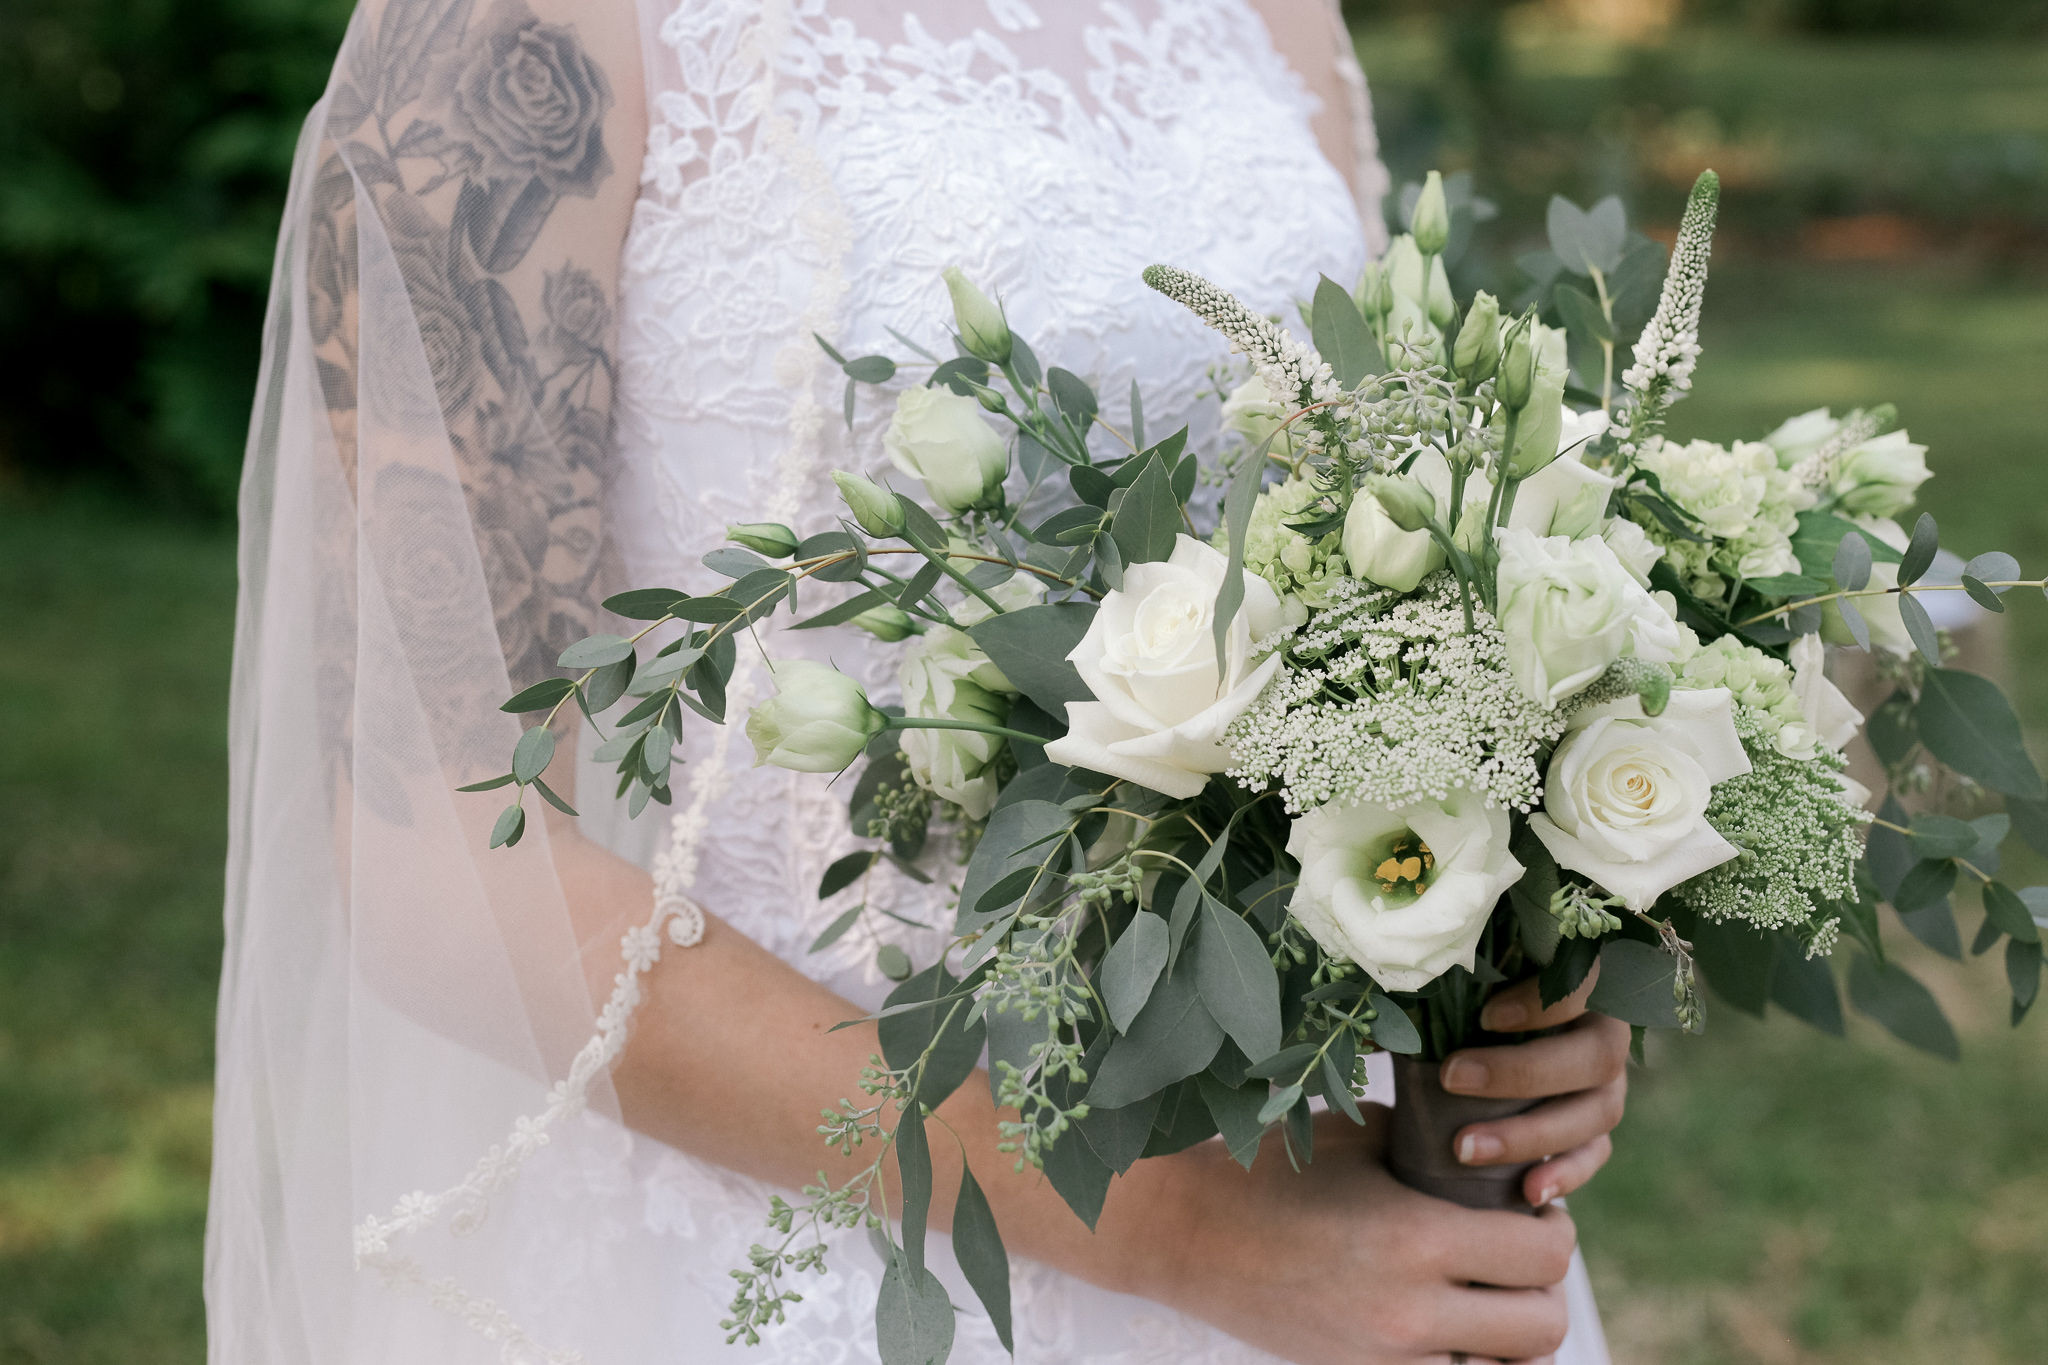 Styled shoot photographed by Nicole Earl